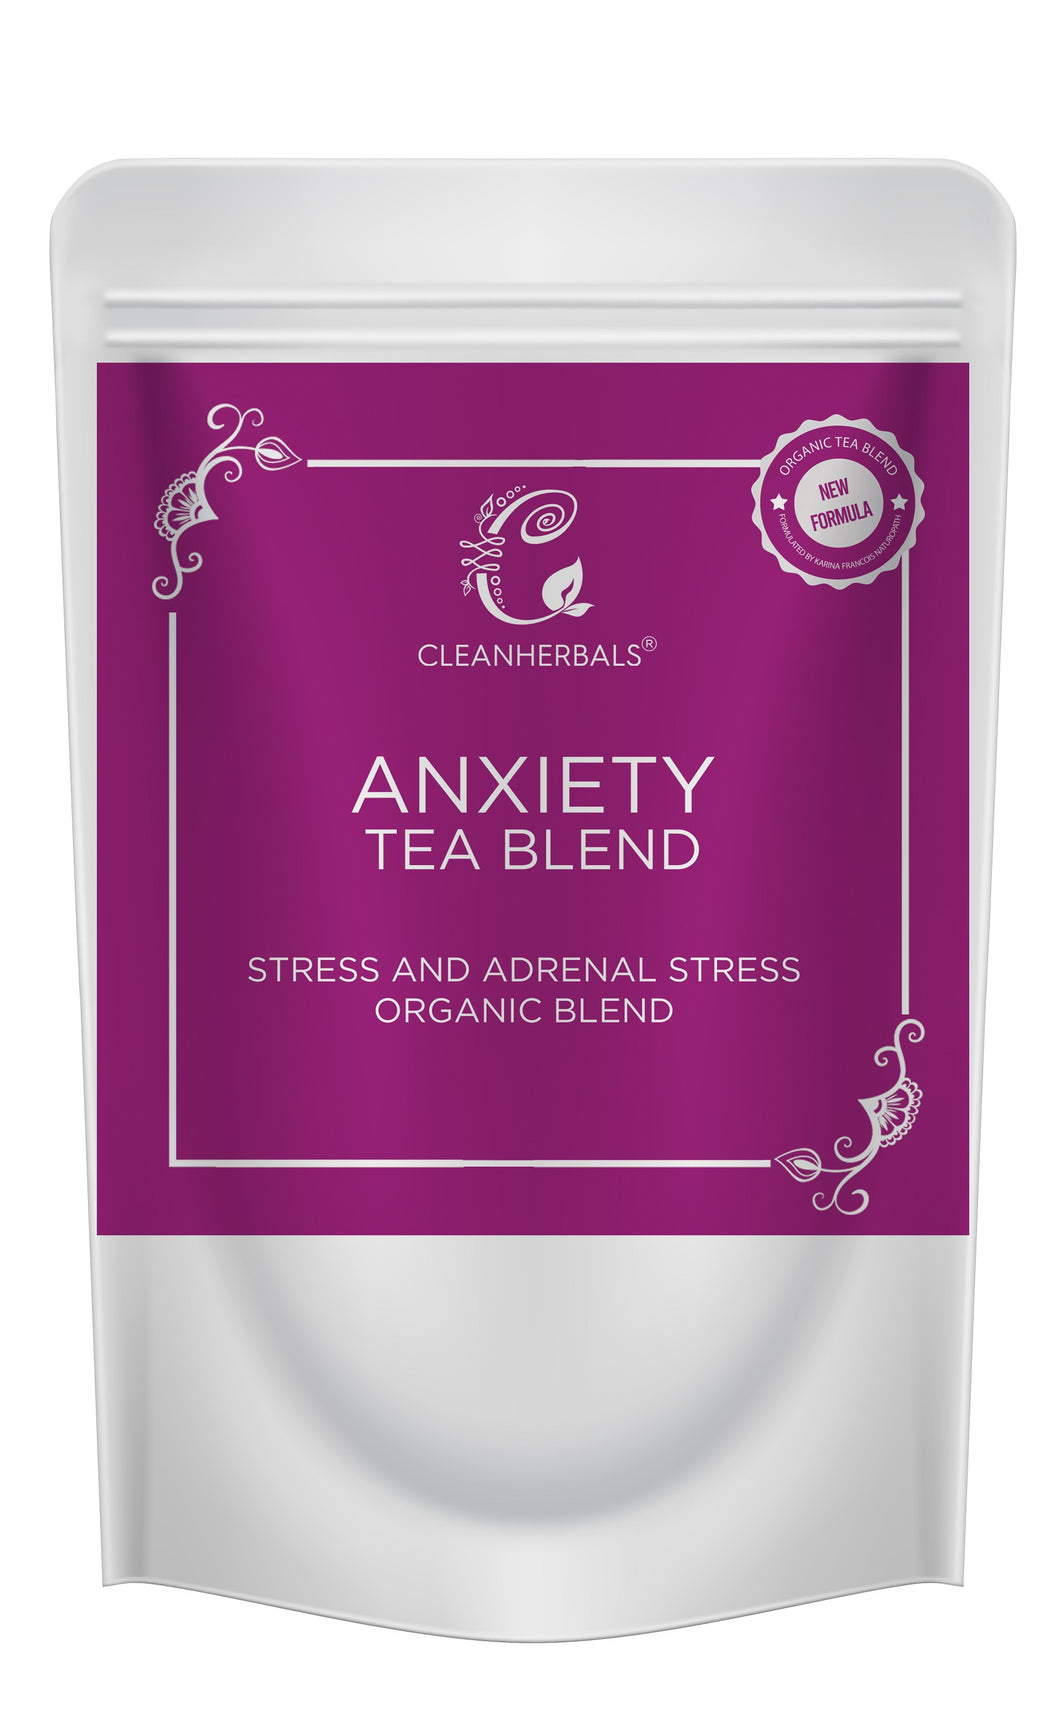 Anxiety Blend-Adrenal Stress, Anxiety and Stress 28g Sample Pack